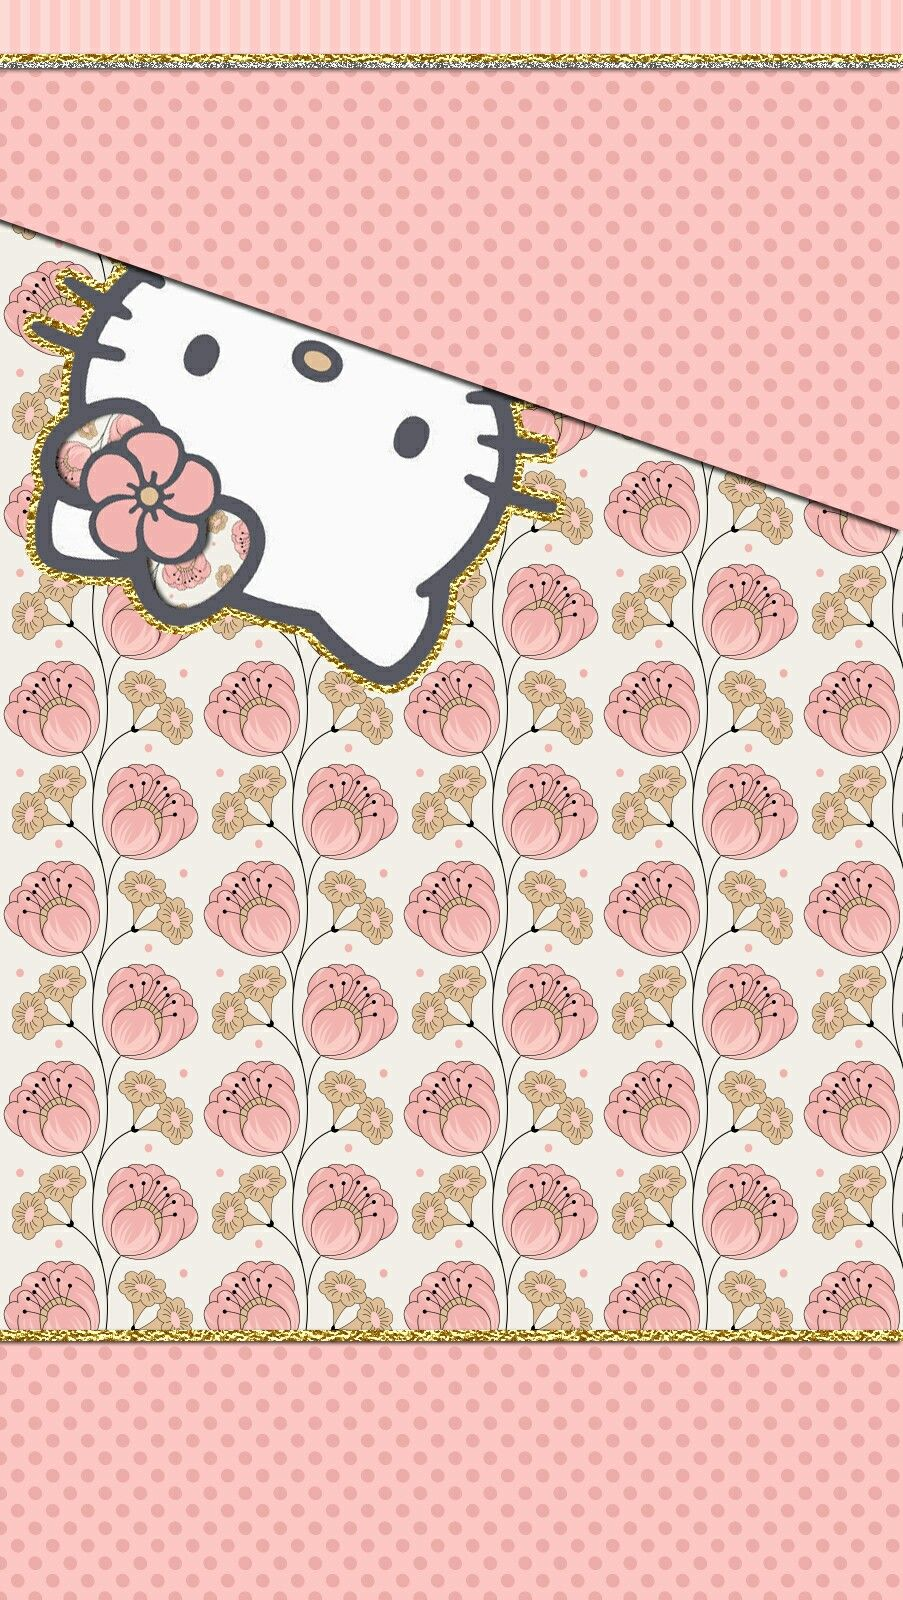 Iphone Wall Hello Kitty Wallpaper Iphone Pink And Black